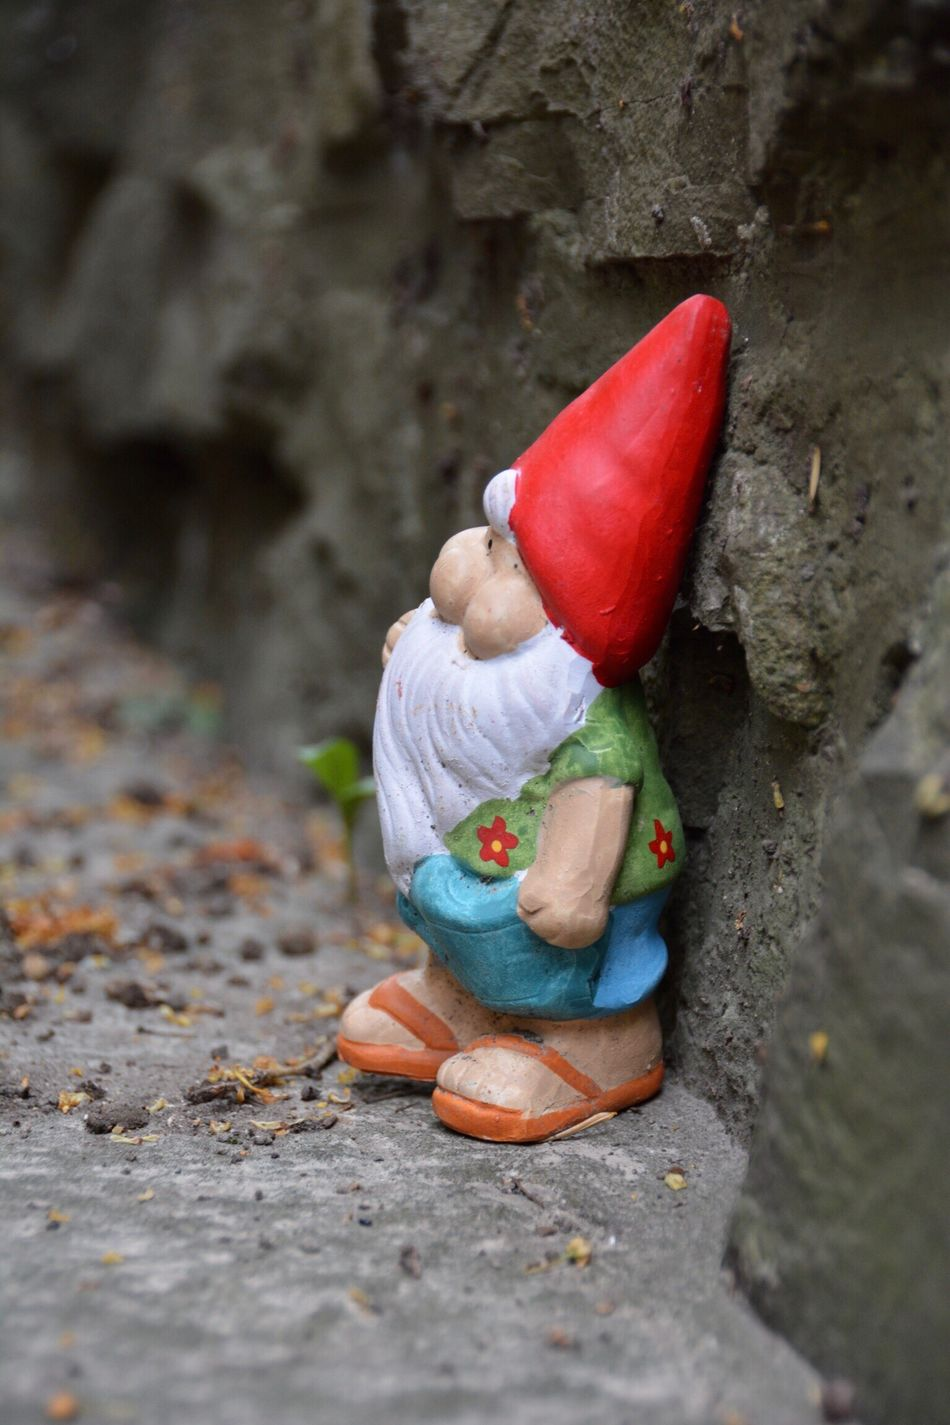 Gartenzwerg Childhood One Person Day High Angle View Real People Full Length Outdoors Red Close-up People Garden Goblin Gnome Garden Gnomes